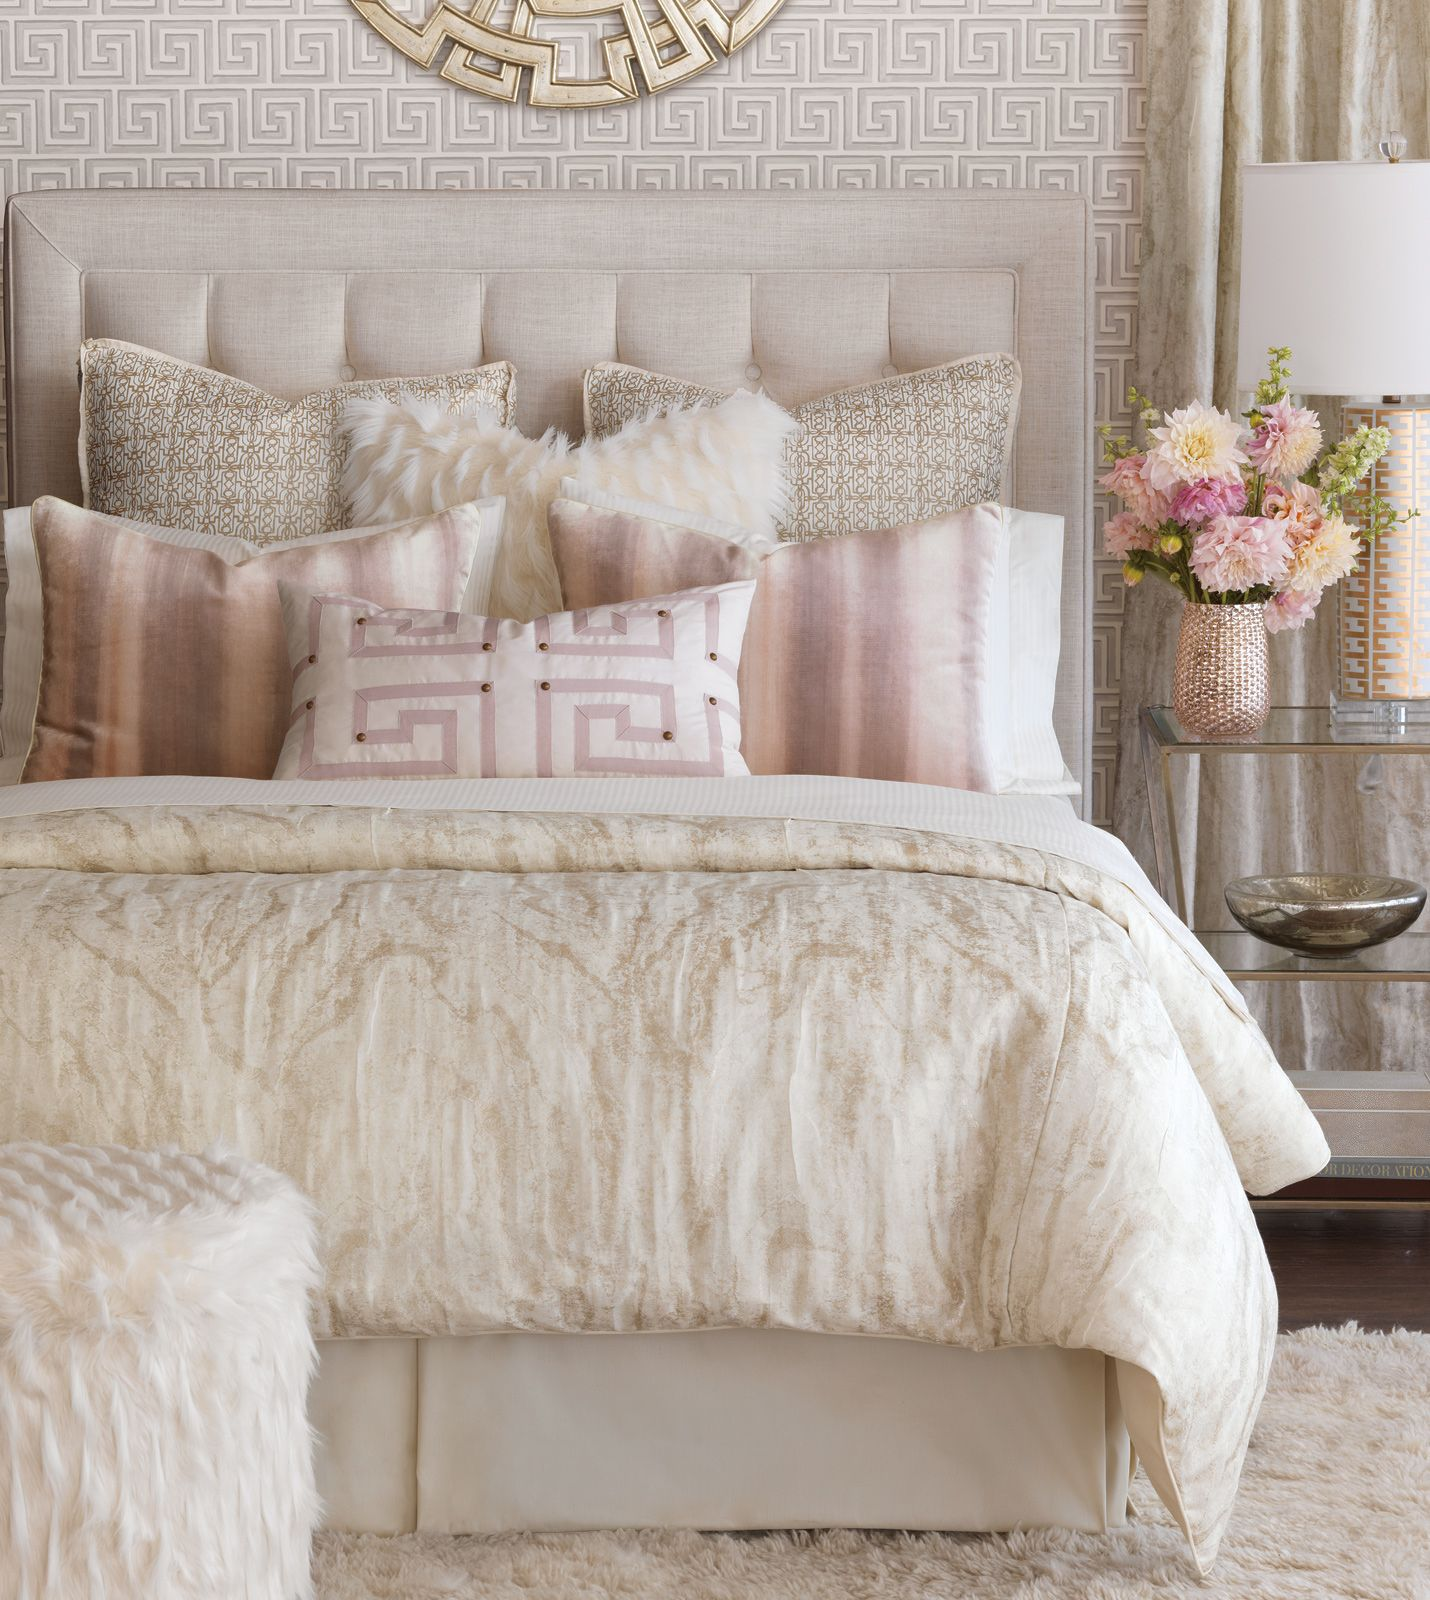 luxury bedding by eastern accents  halo collection  vintage rose  - luxury bedding by eastern accents  halo collection  vintage rose ceiling benjamin moore rosetone